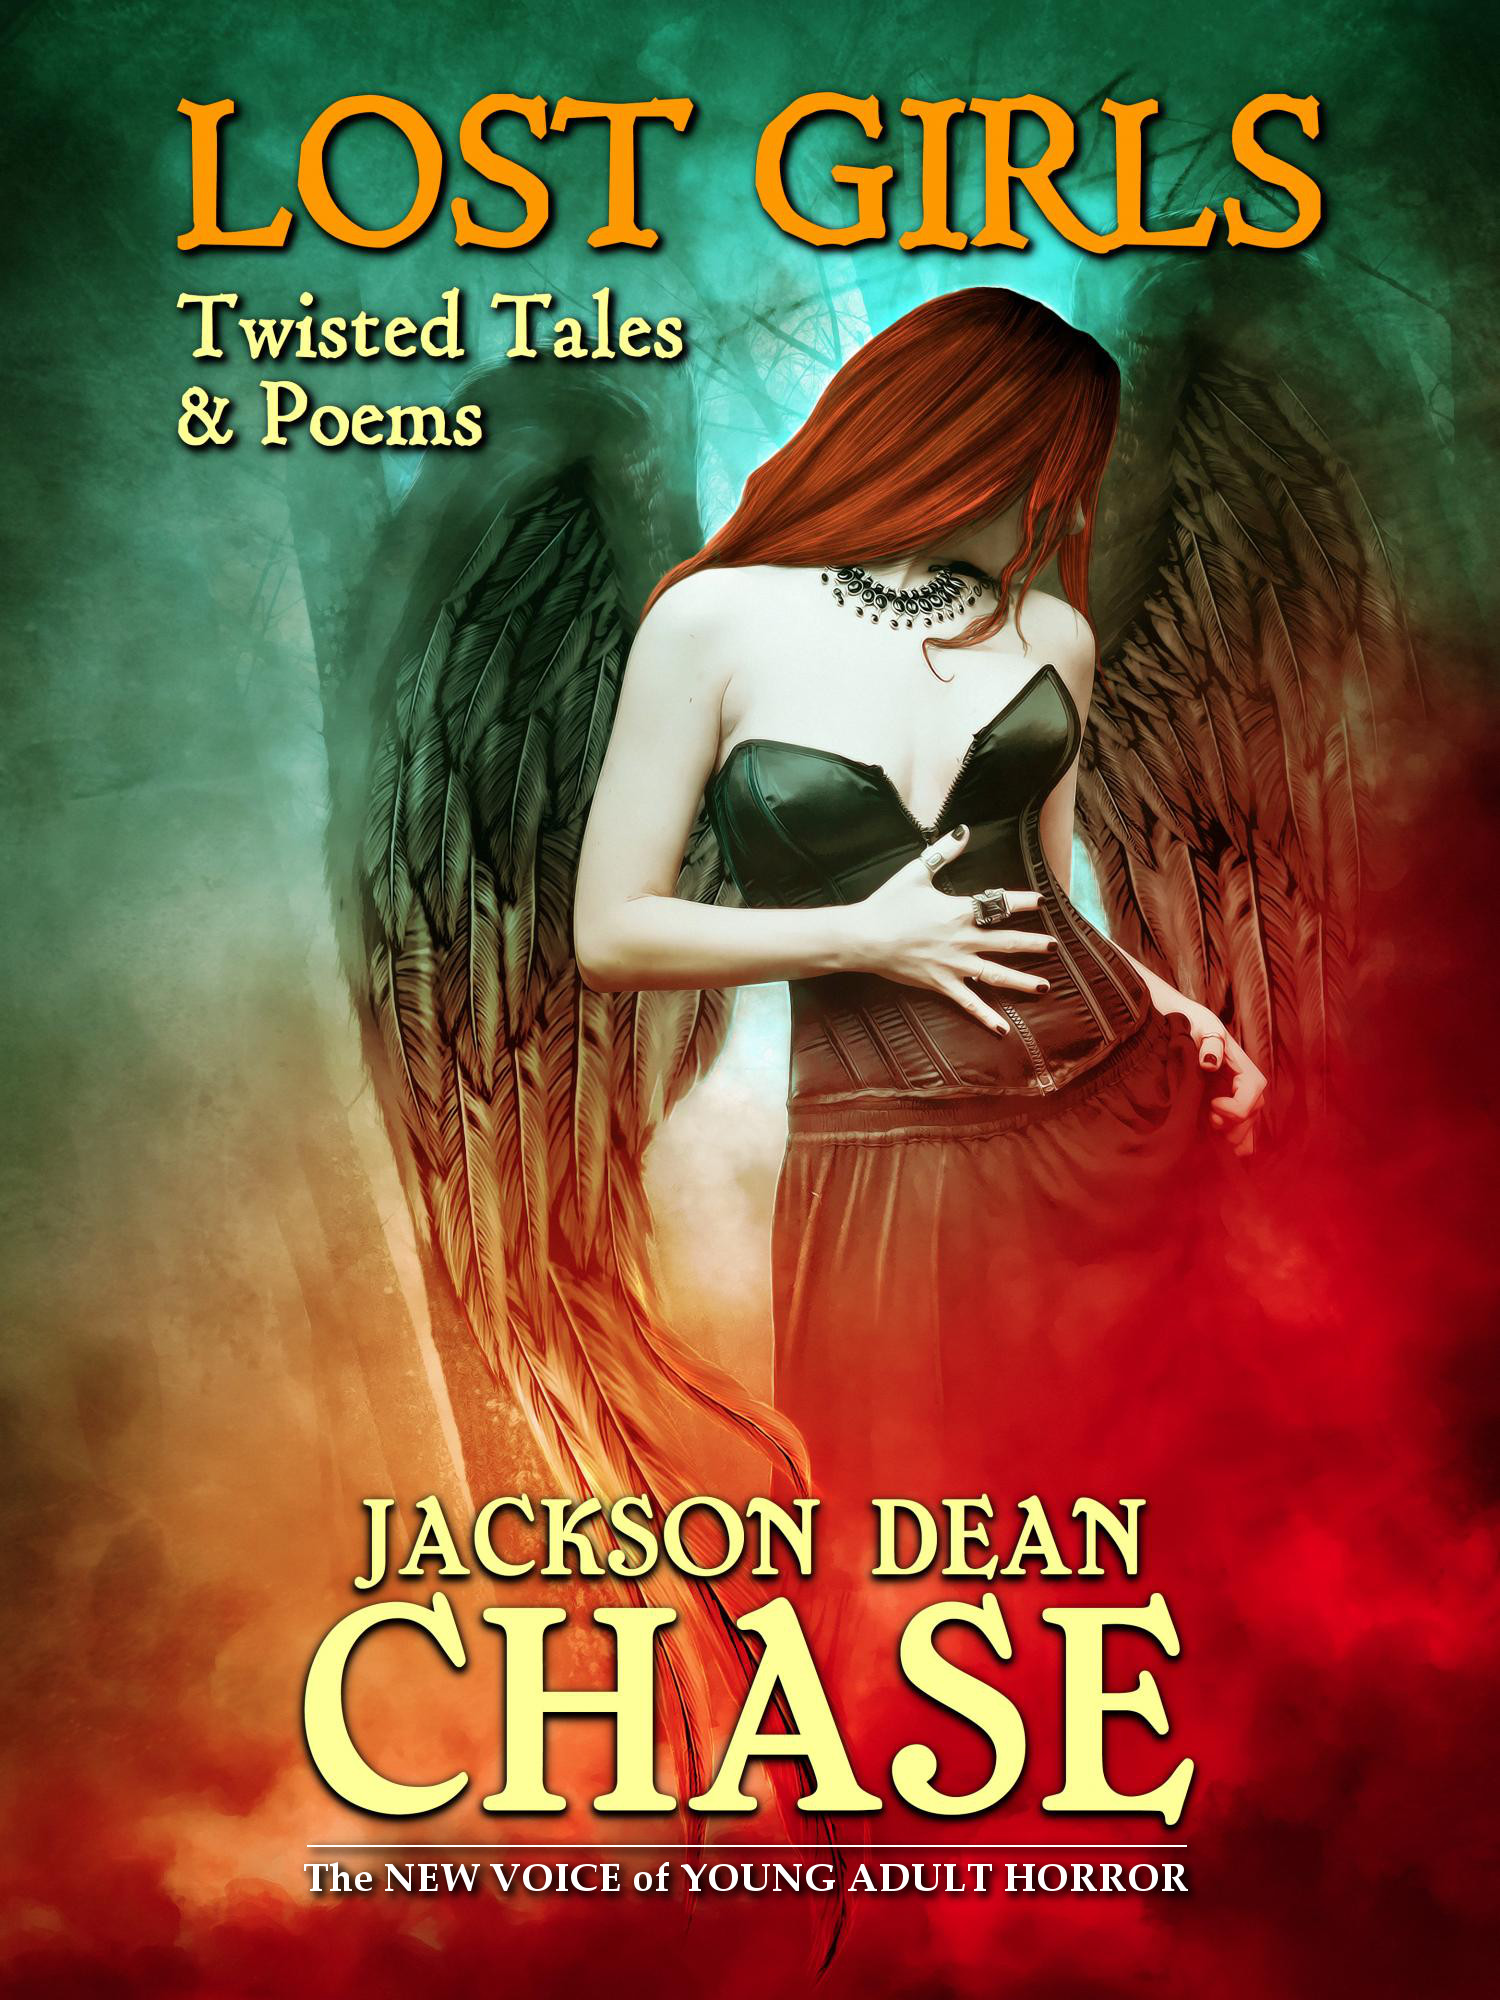 Lost Girls: Twisted Tales & Poems By Jackson Dean Chase